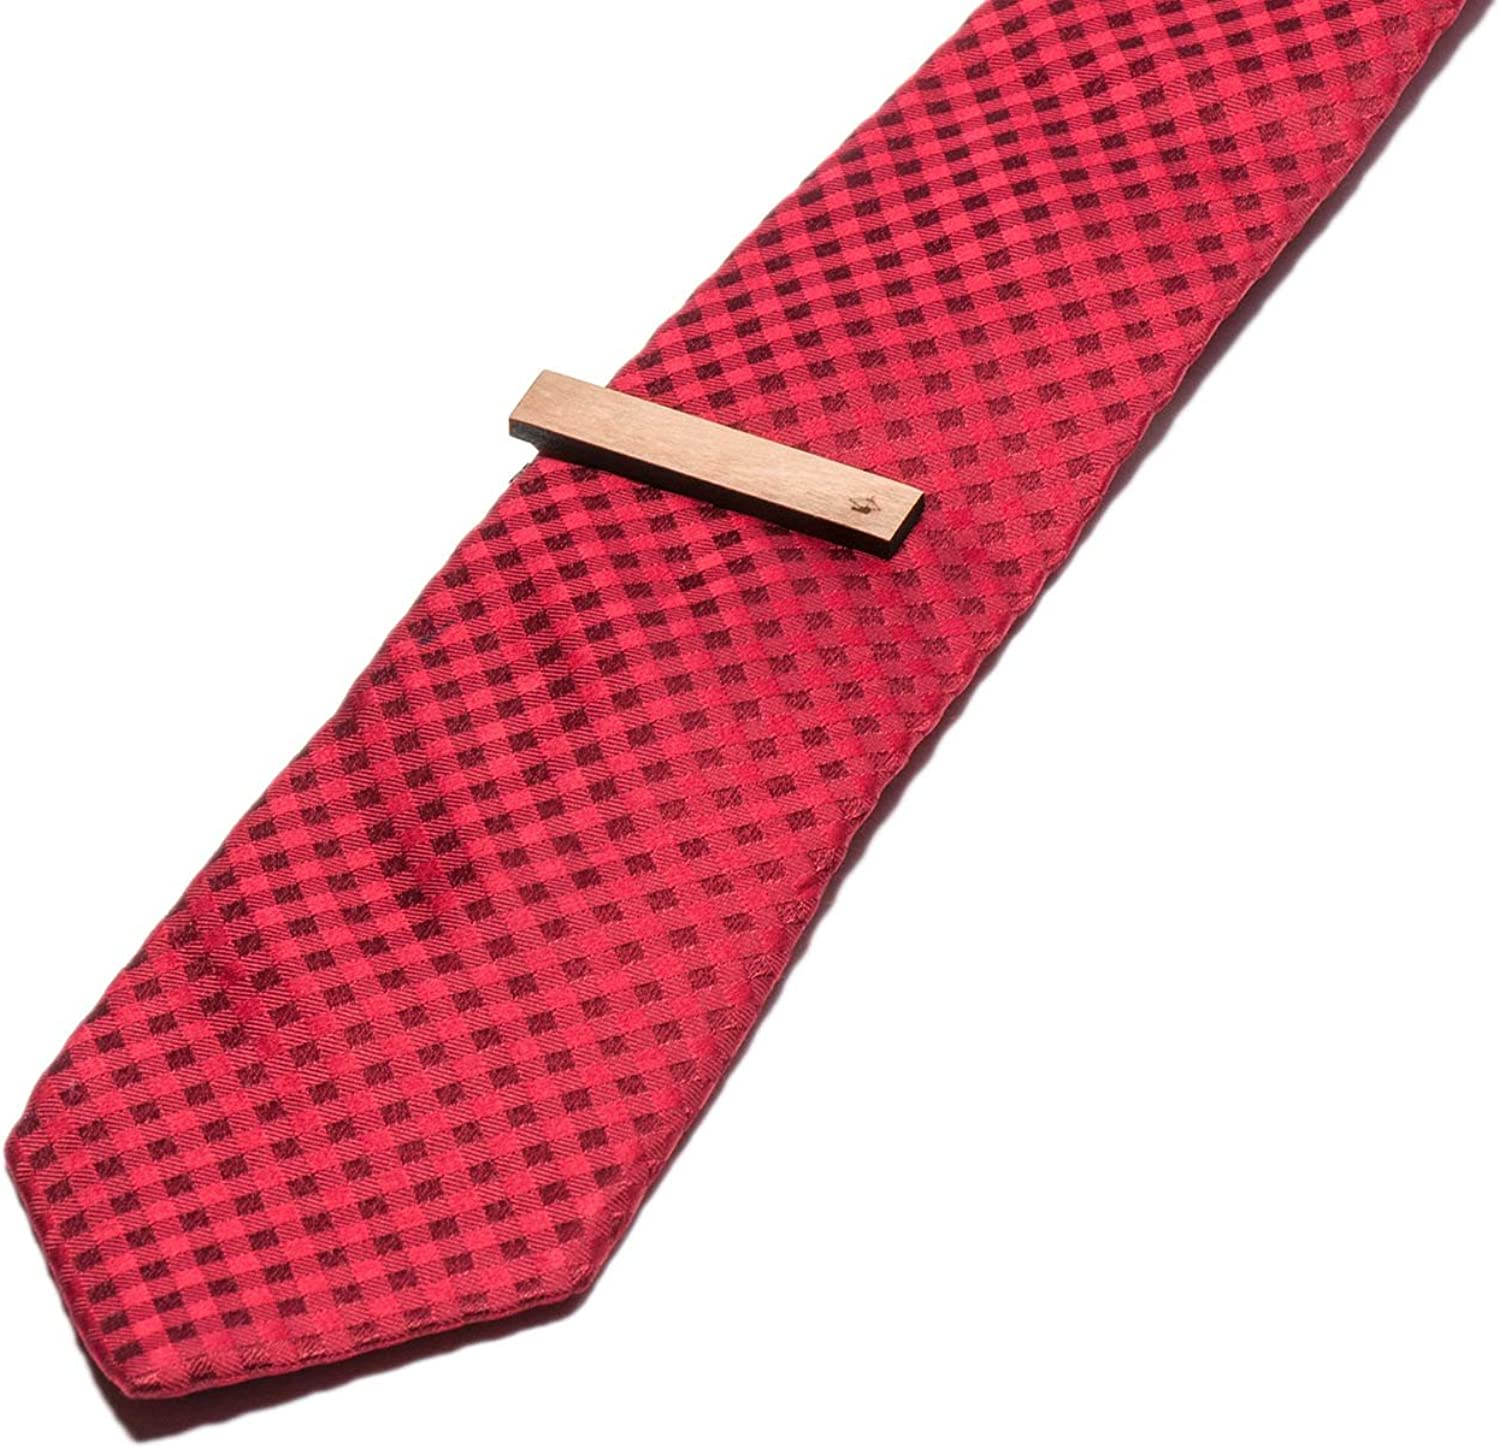 Wooden Accessories Company Wooden Tie Clips with Laser Engraved Shrimp Boat Design Cherry Wood Tie Bar Engraved in The USA